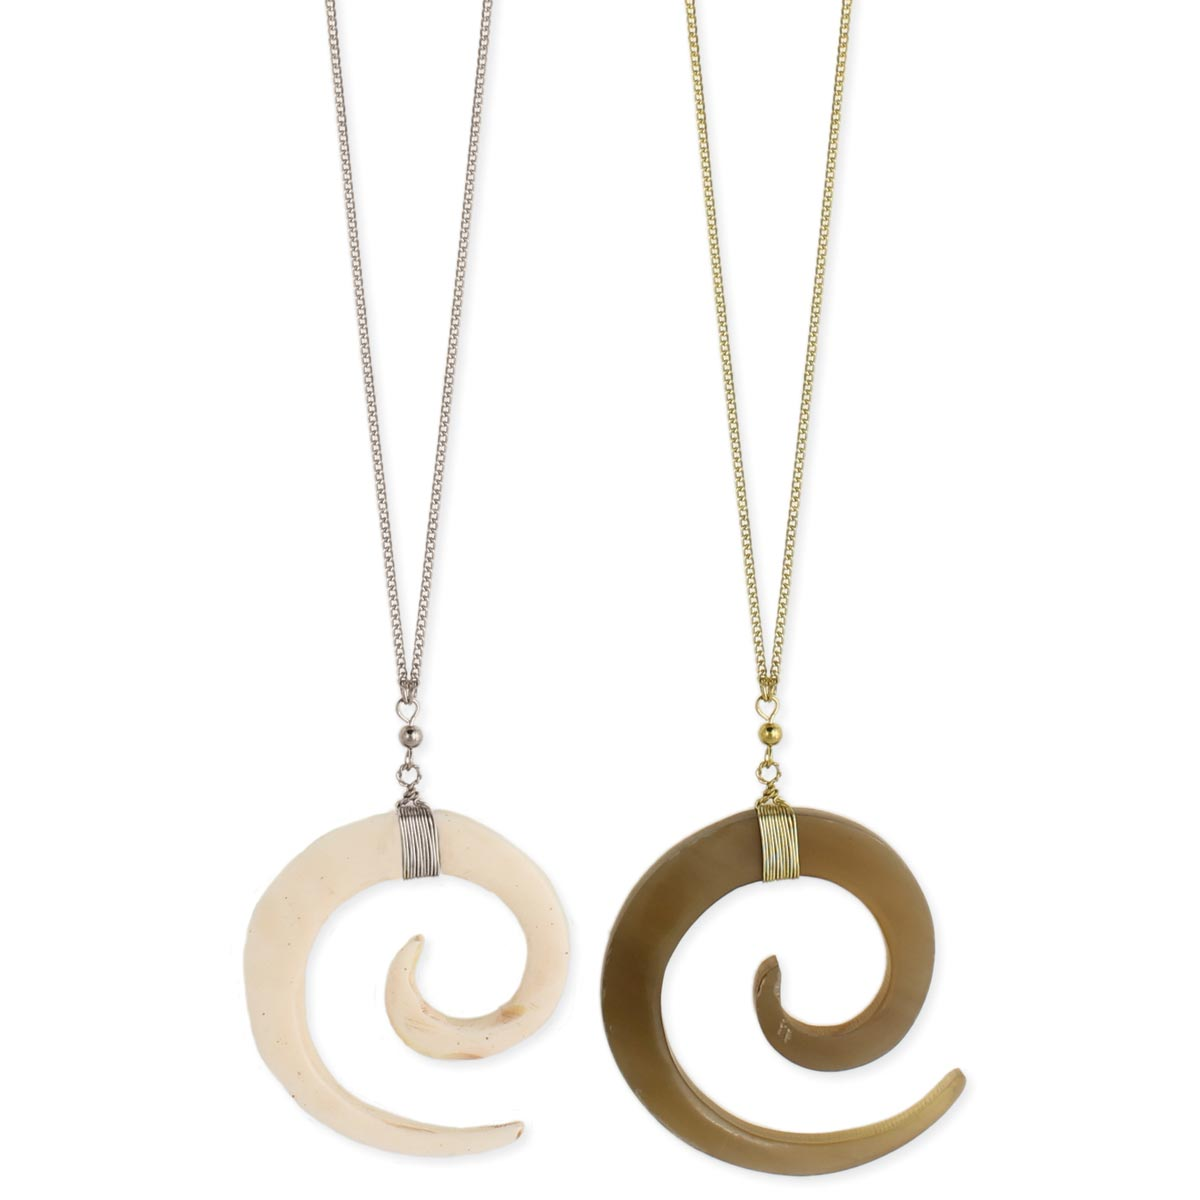 Wholesale horn spiral pendant long gold necklace zad fashion horn spiral pendant long gold necklace view detailed images 2 aloadofball Image collections